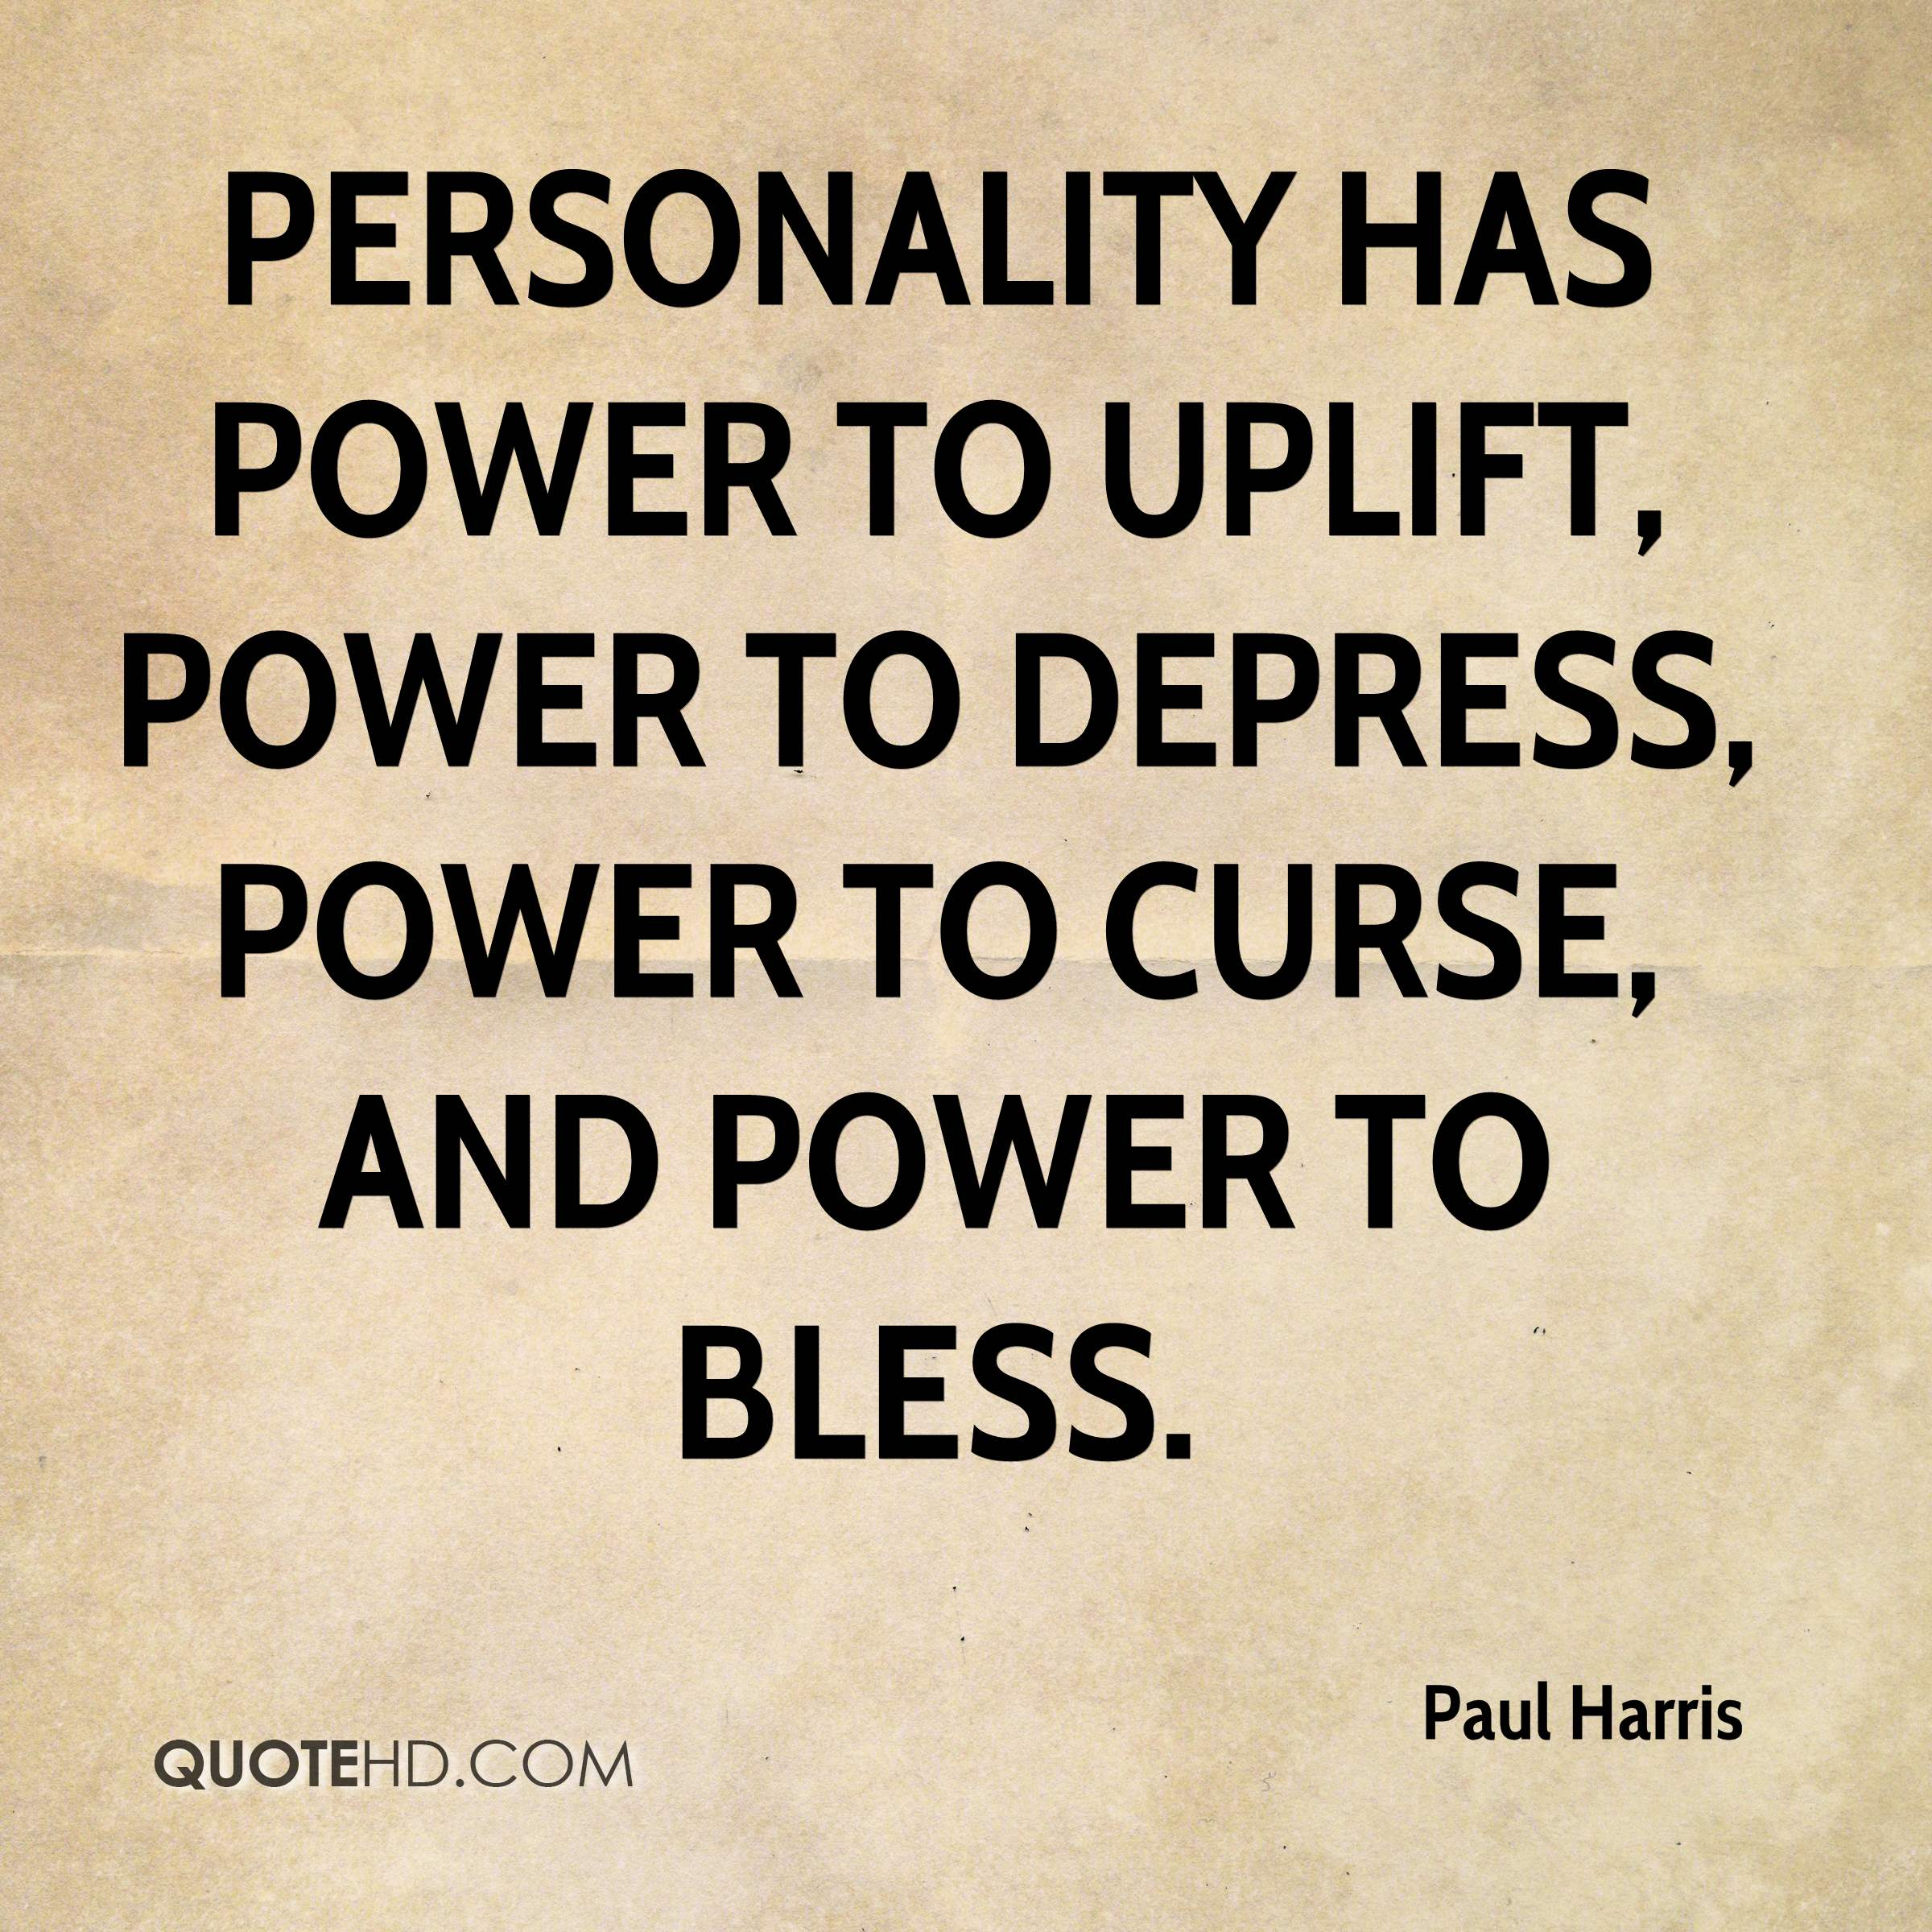 Quotes On Power 66 Best Personality Quotes